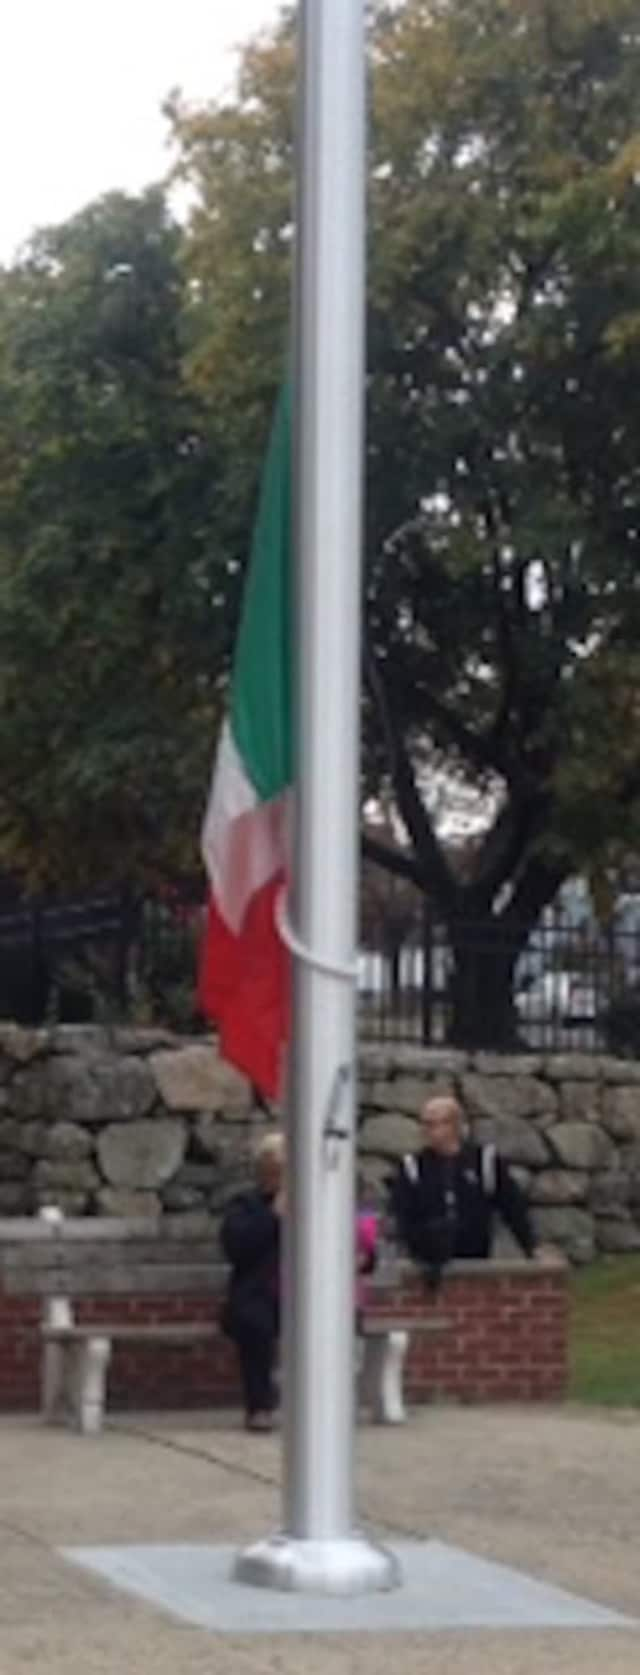 The raising of the Italian flag is a traditional feature of many Columbus Day celebrations.